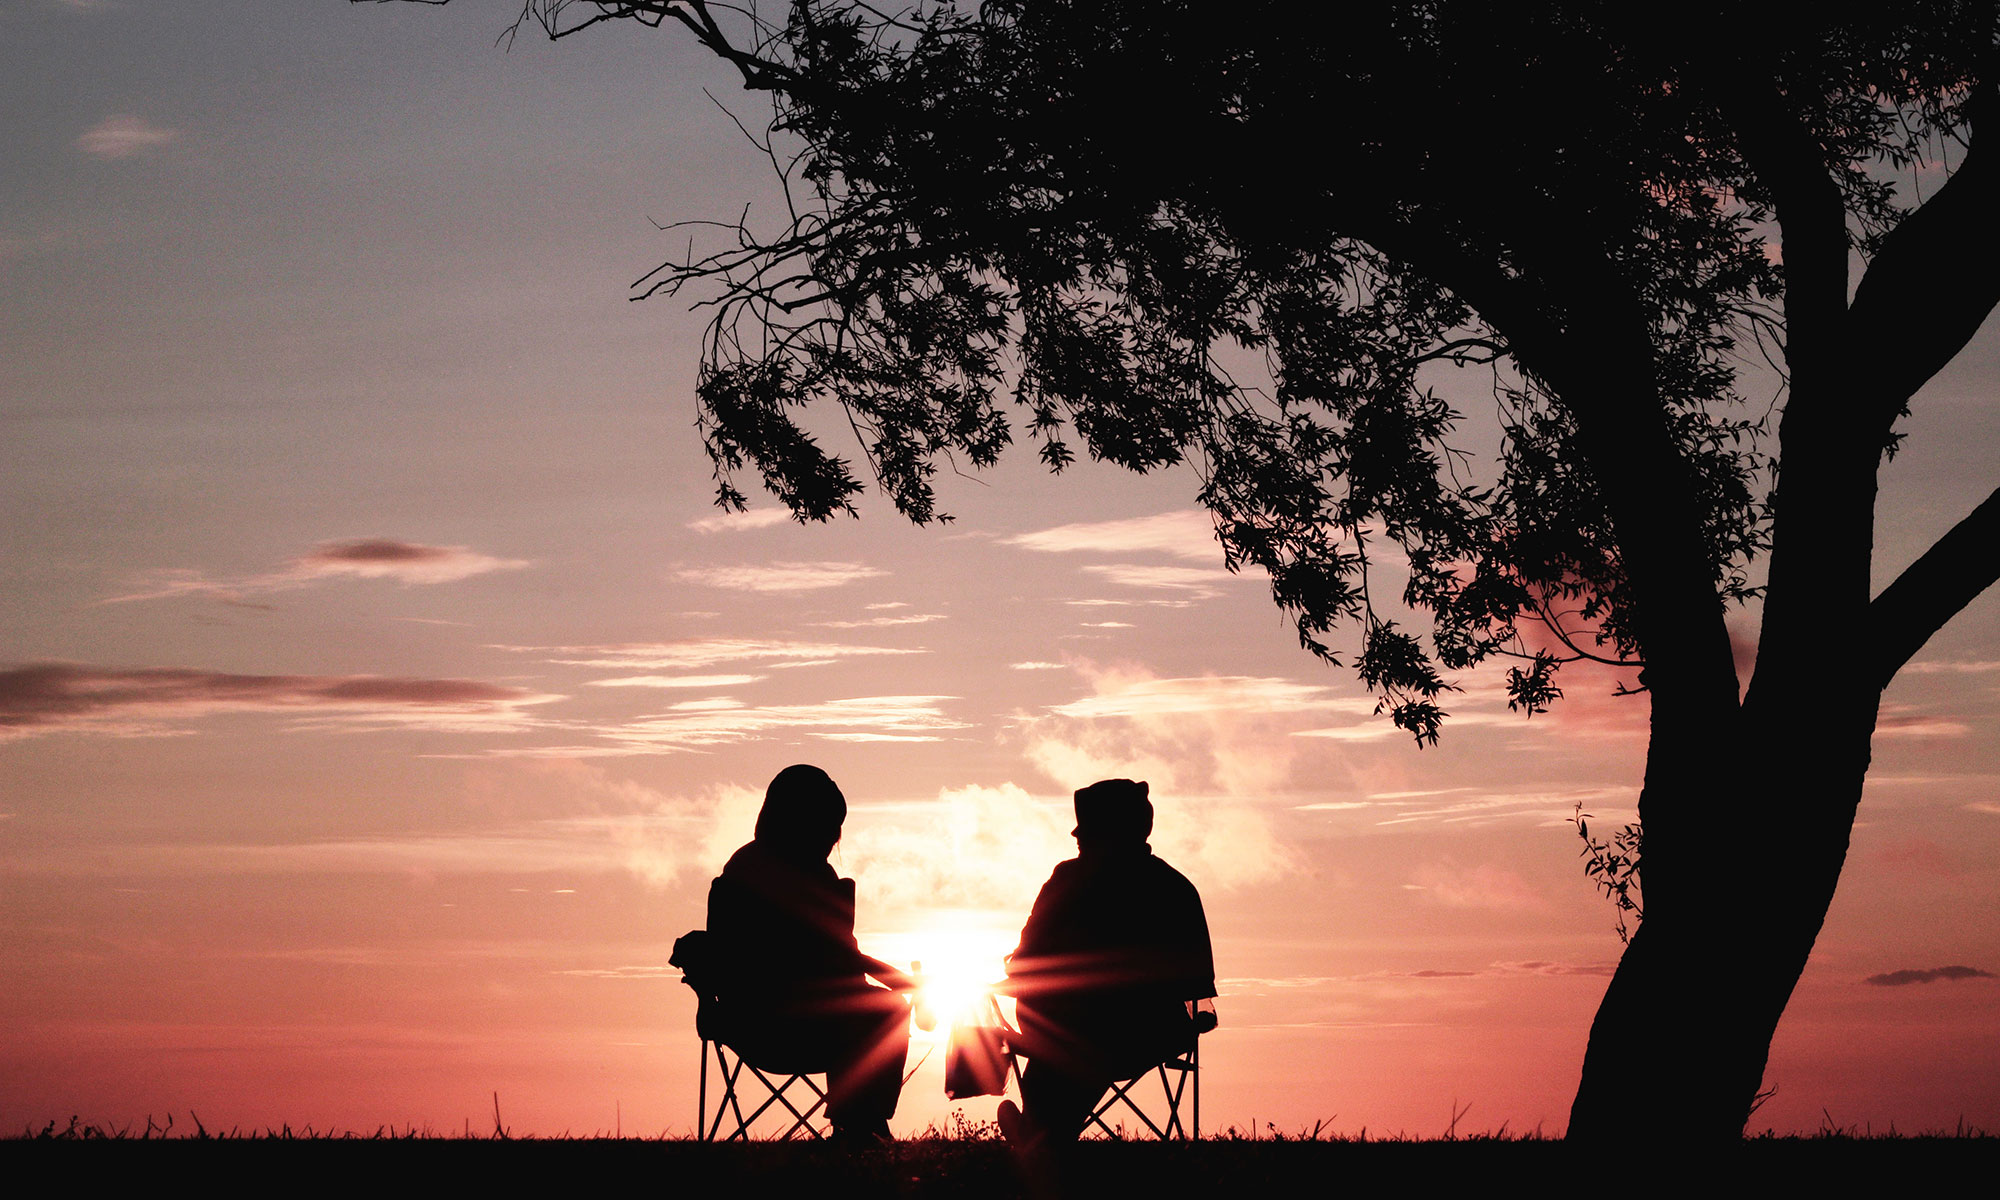 Two people together at sunset